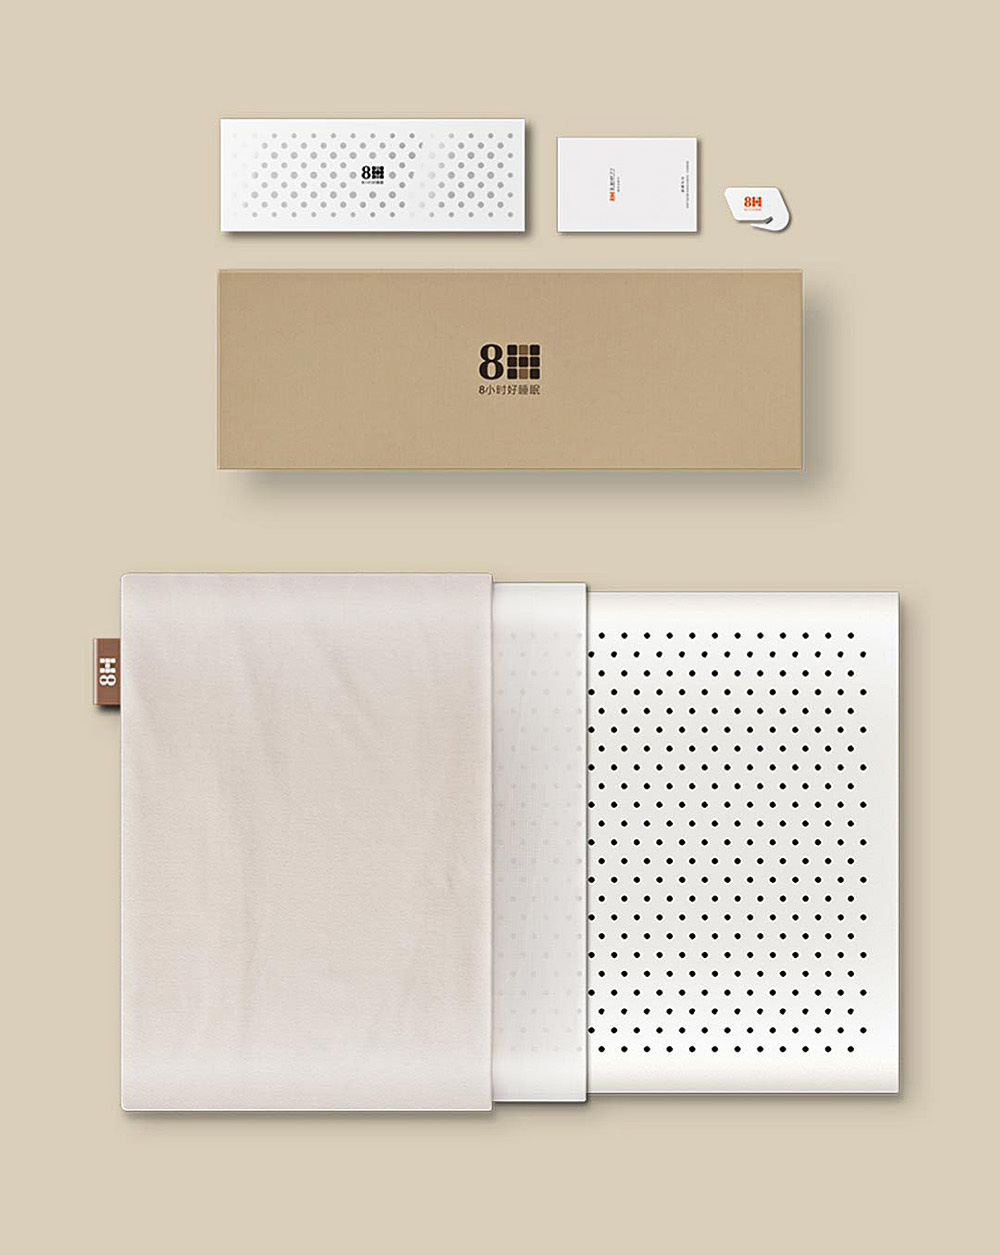 8H Cool Feeling Slow Rebound Memory Foam Cotton Pillow Z2 Super Soft Antibacterial Neck Support Cushion from Xiaomi youpin- Beige